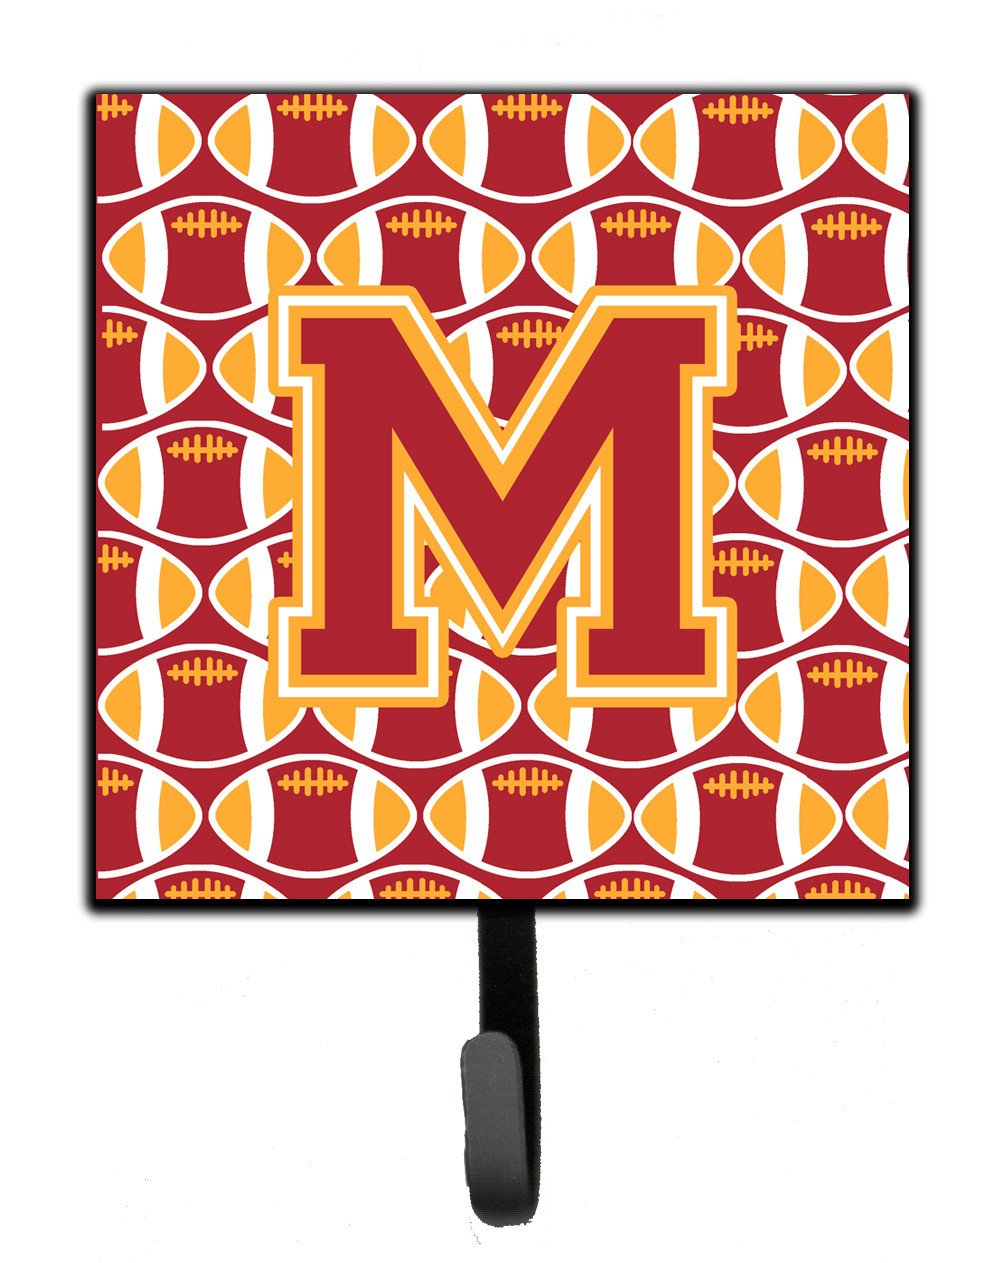 Letter M Football Cardinal and Gold Leash or Key Holder CJ1070-MSH4 by Caroline's Treasures